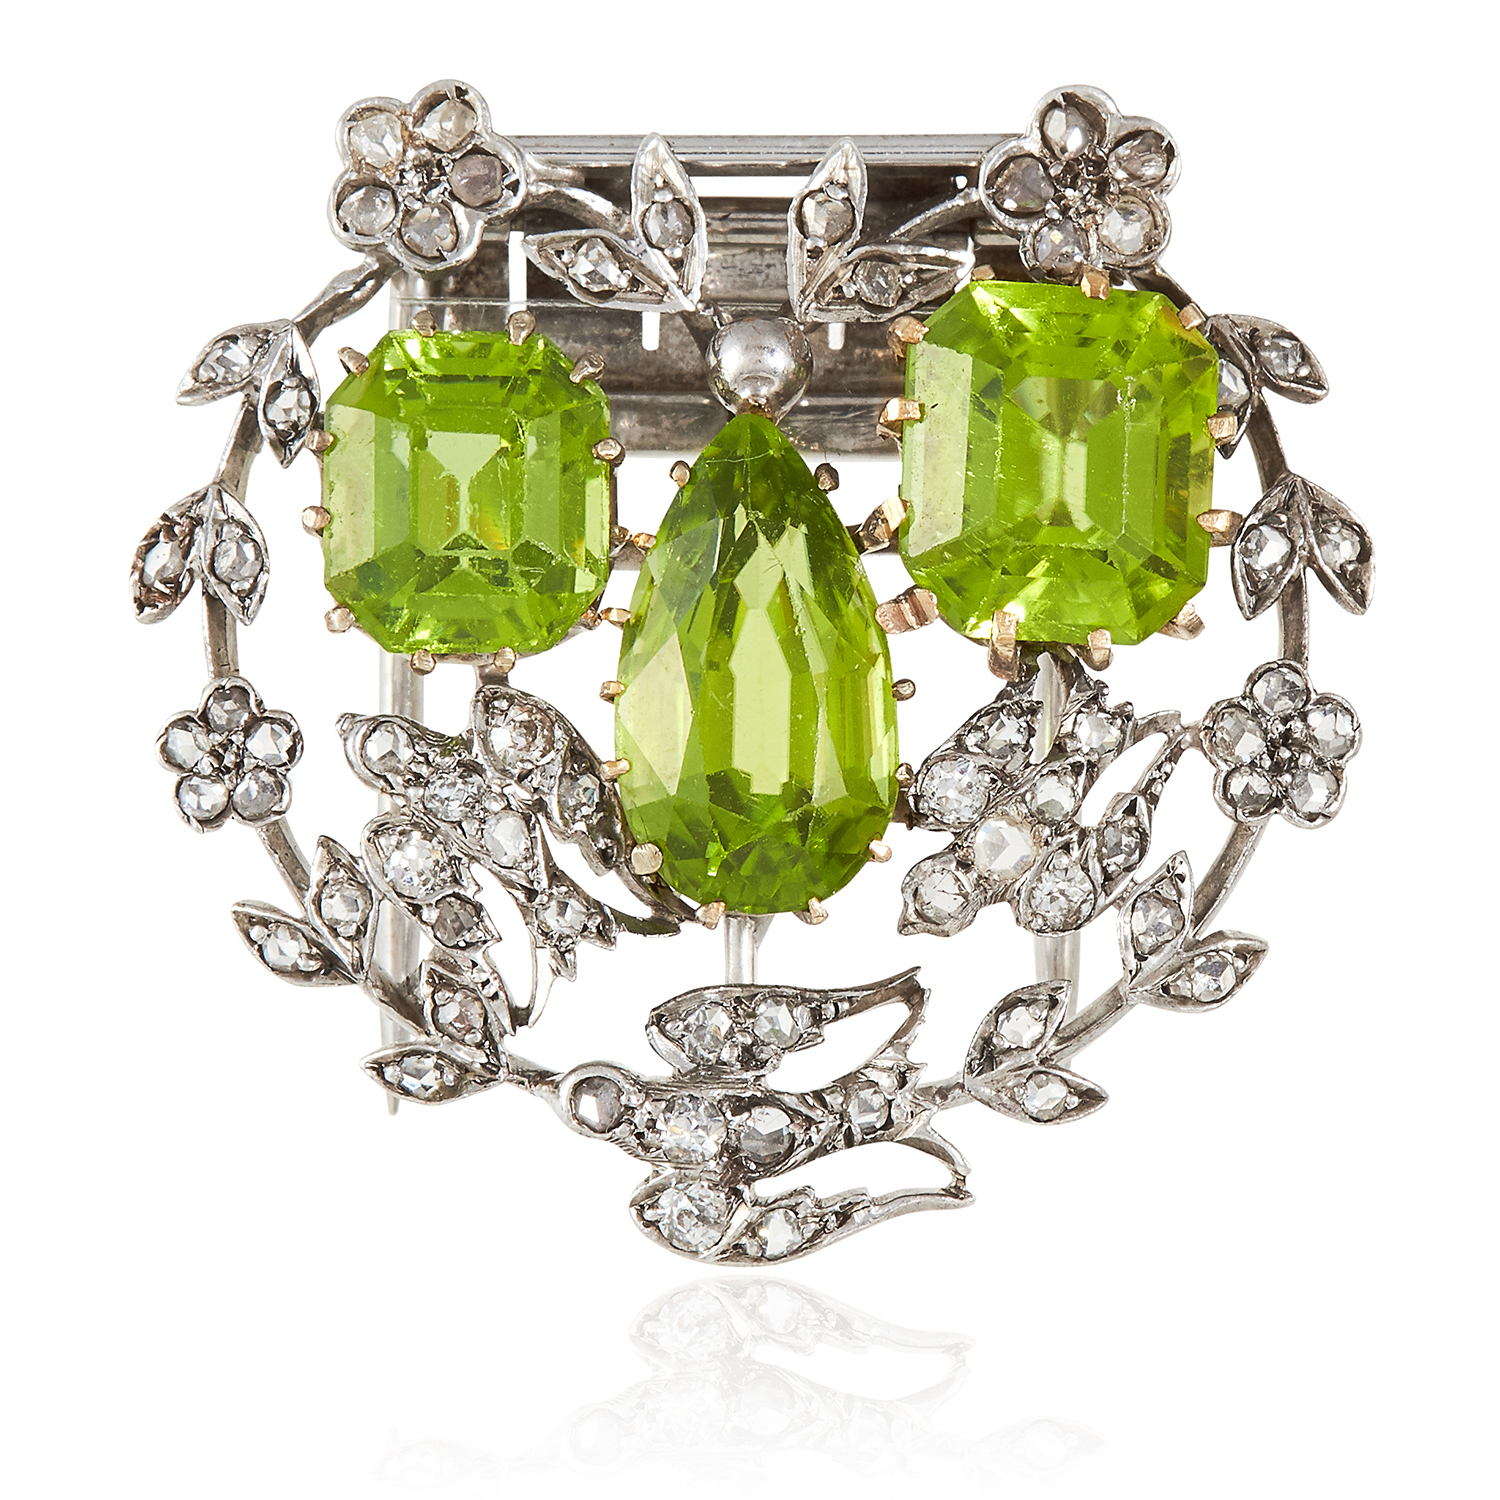 Los 13 - A PAIR OF ANTIQUE PERIDOT AND DIAMOND CLIP BROOCHES in yellow gold and silver, each set with a